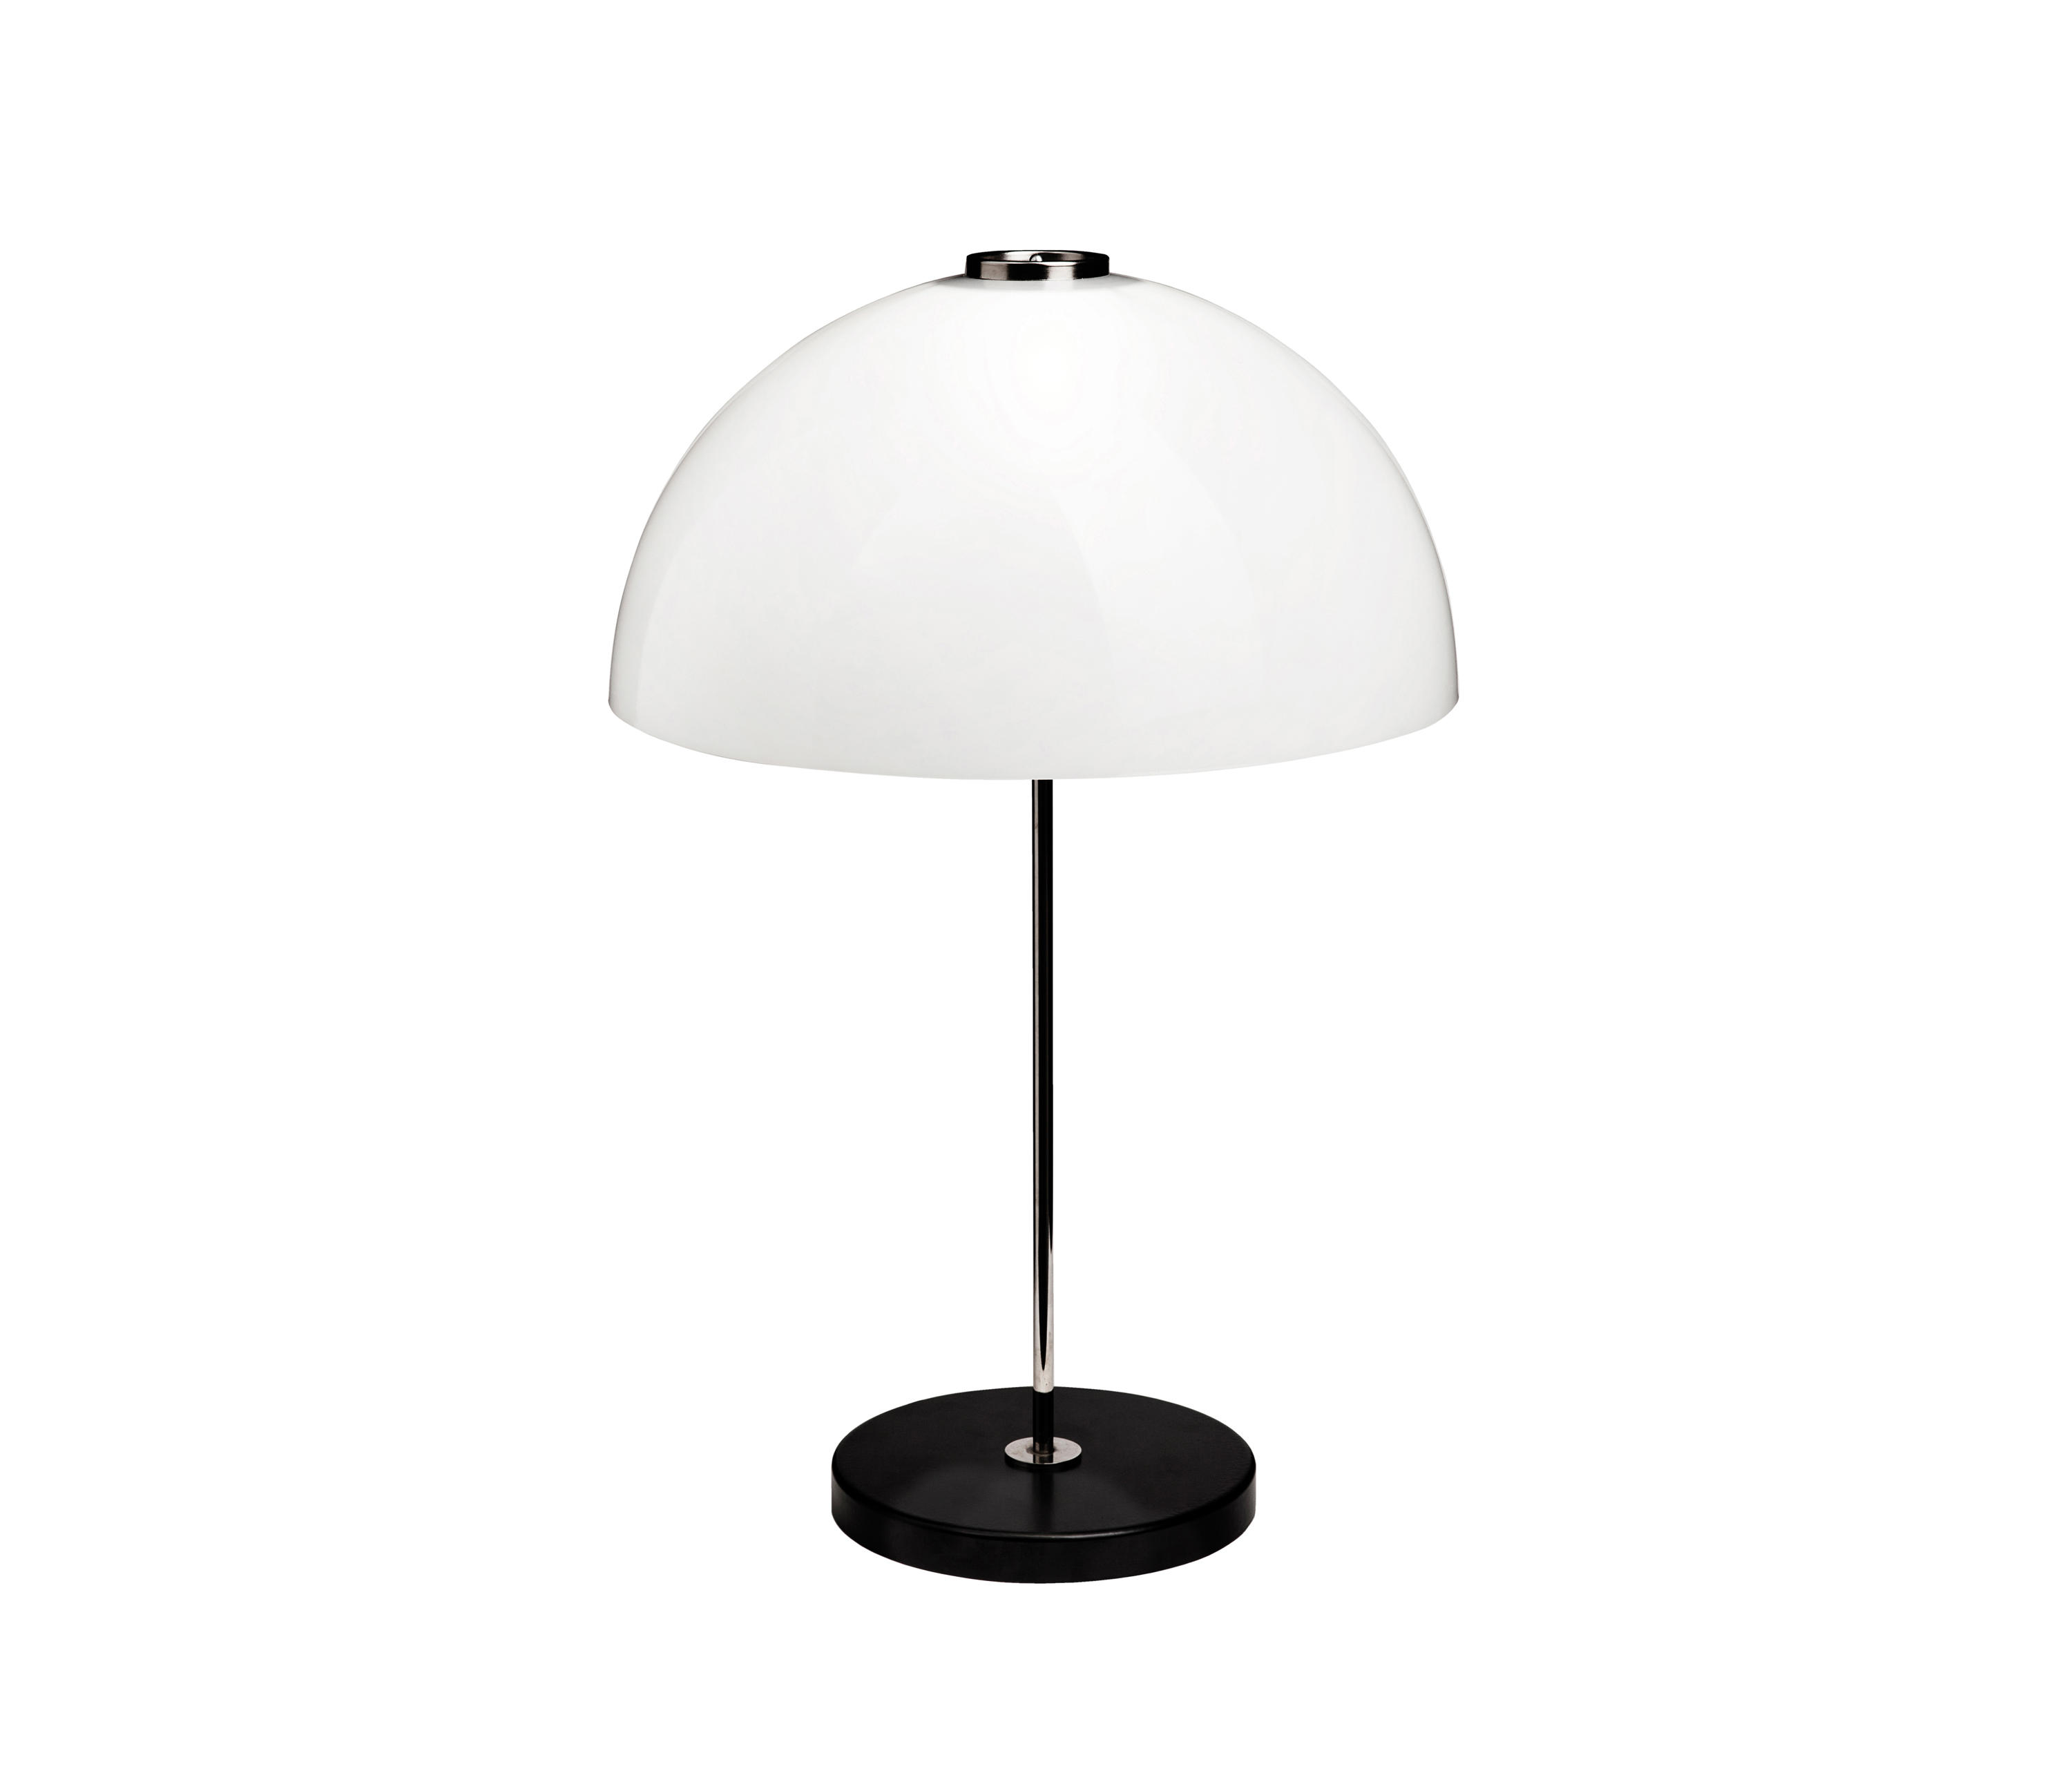 Kupoli table lamp black general lighting from innolux architonic kupoli table lamp black by innolux general lighting geotapseo Image collections